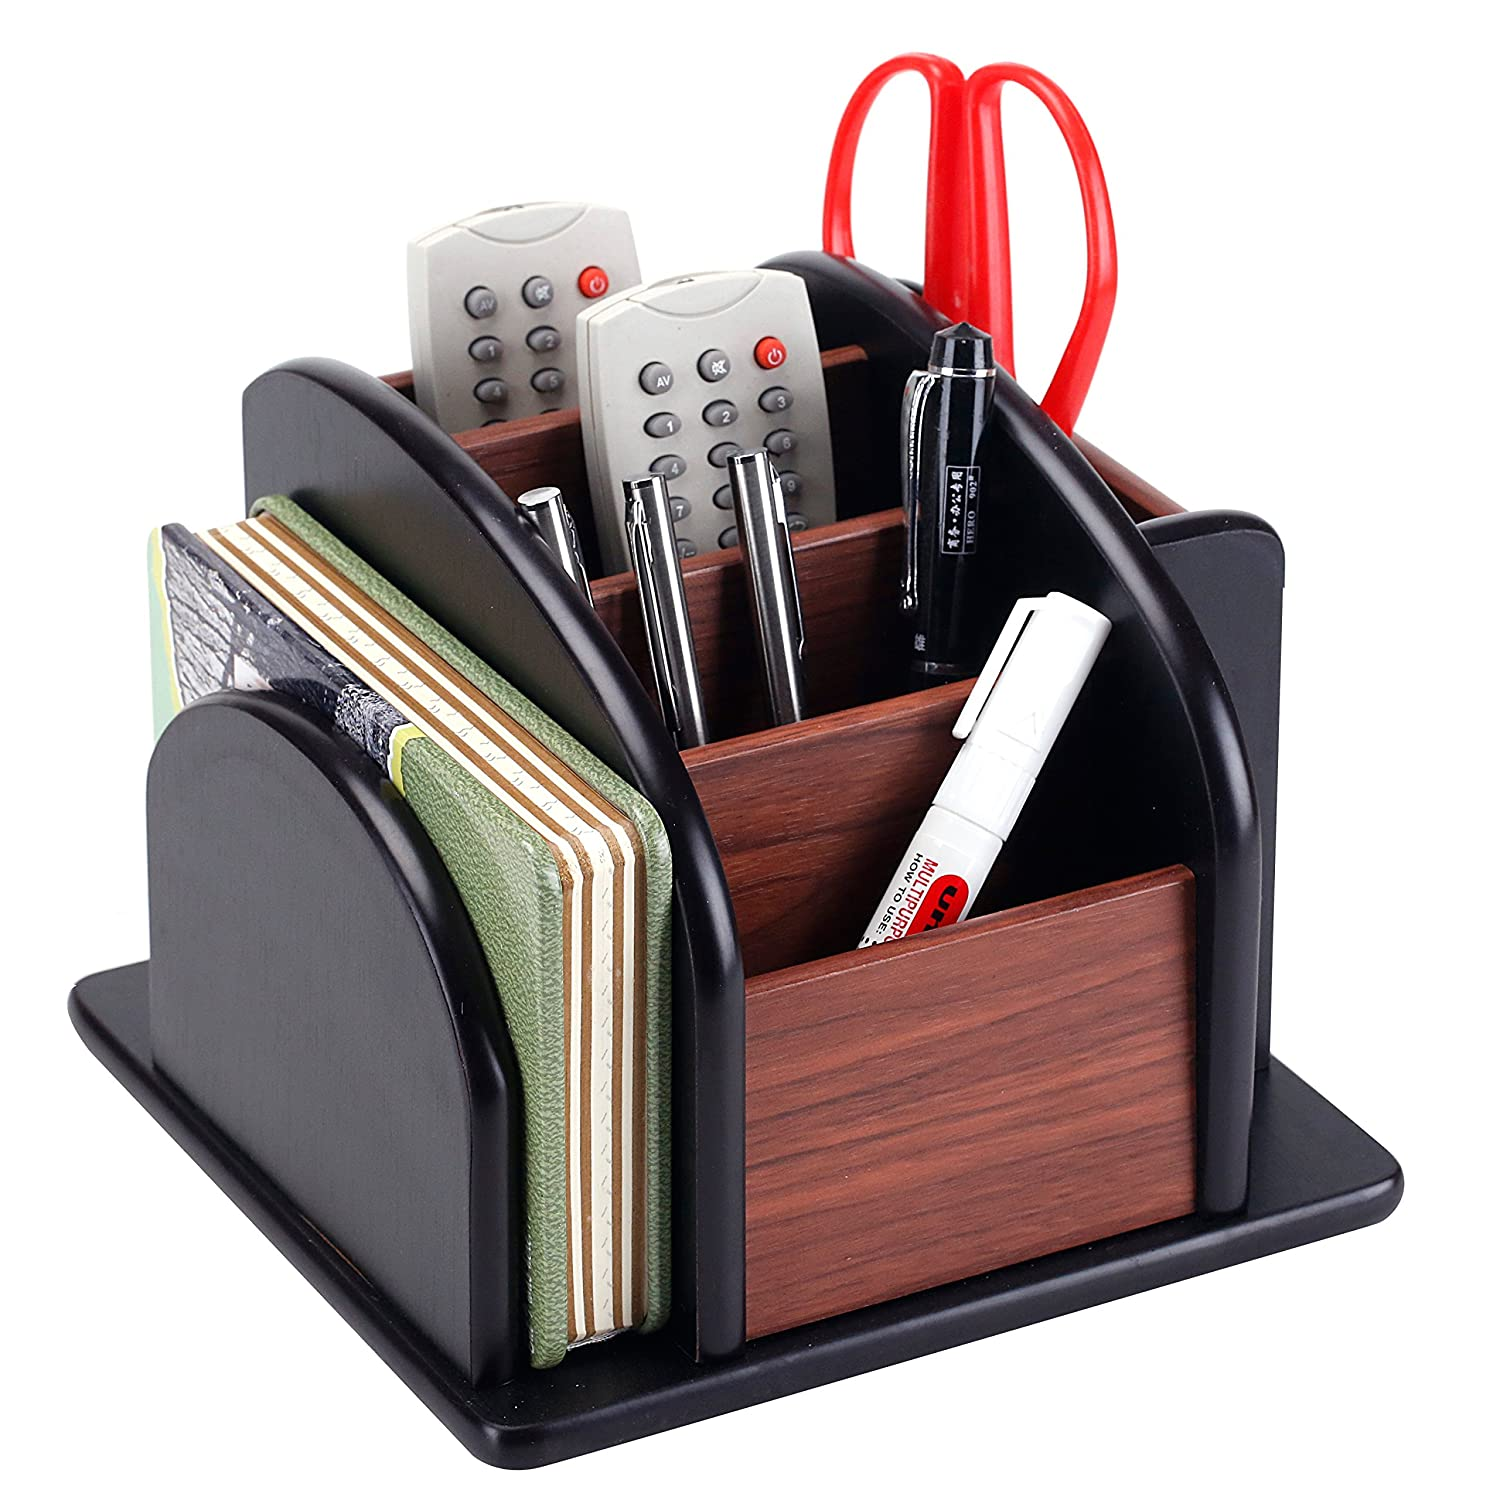 6-Compartment Wood Rotating Remote Caddy/Desktop Office Supply Organizer Holder